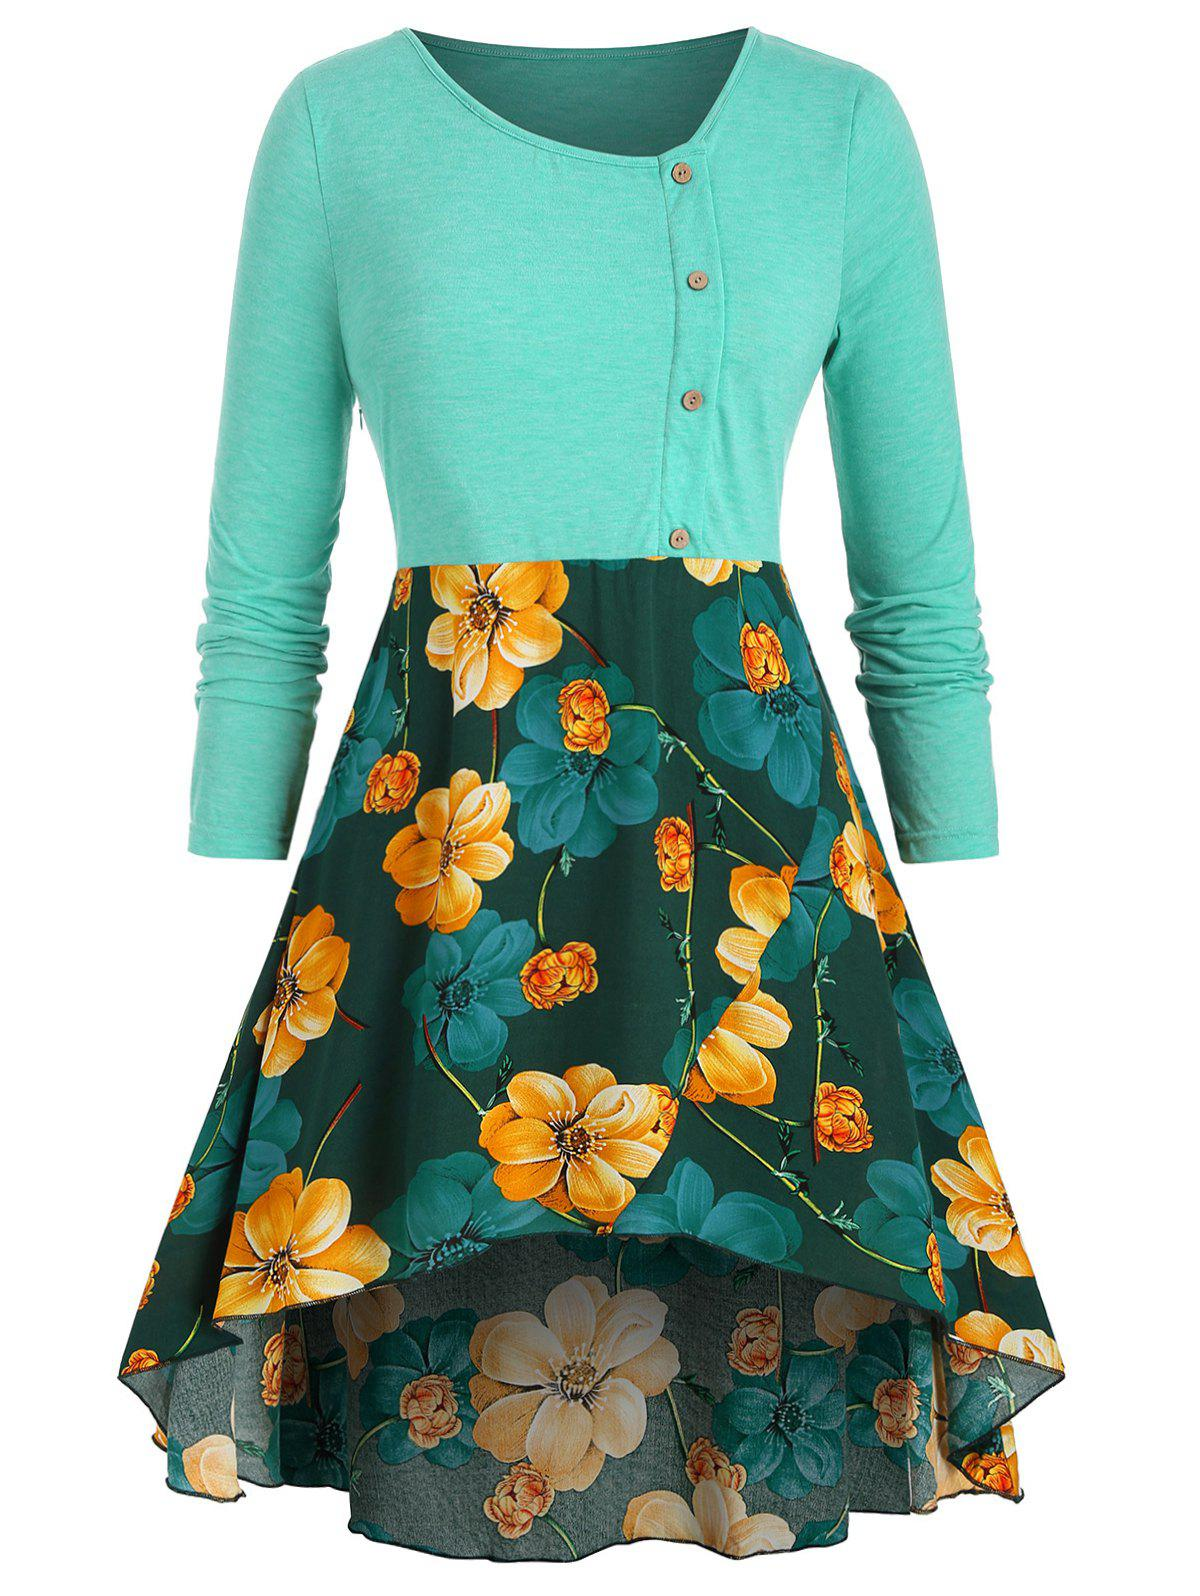 Mock Buttons Floral High Low Plus Size Top - GREEN 5X